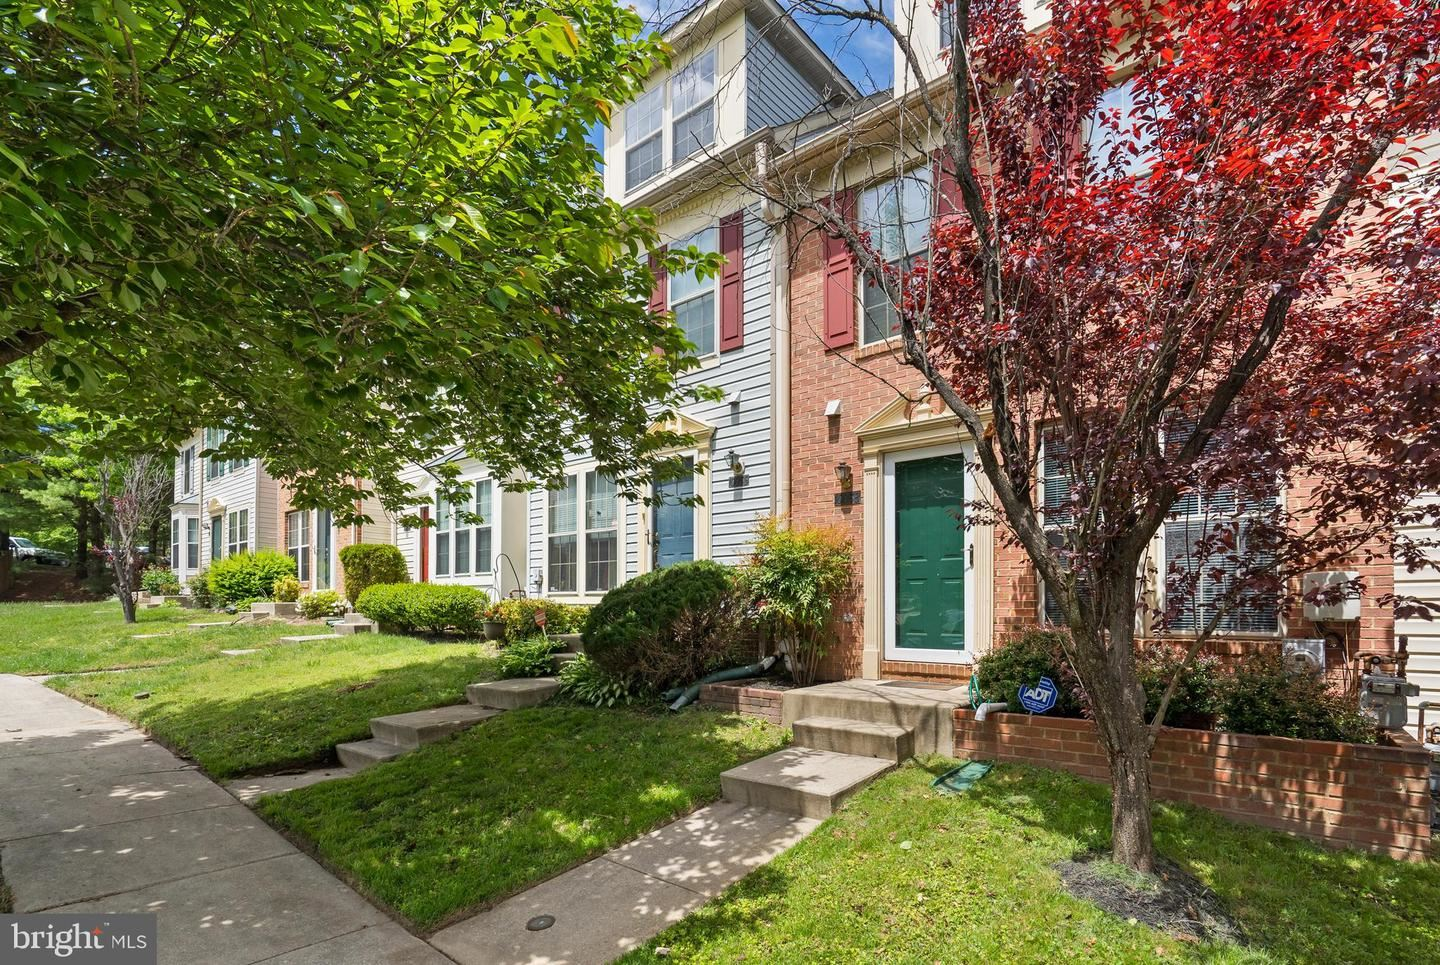 10858 WILL PAINTER DR, Owings Mills, MD 21117 - MLS#: MDBC528068